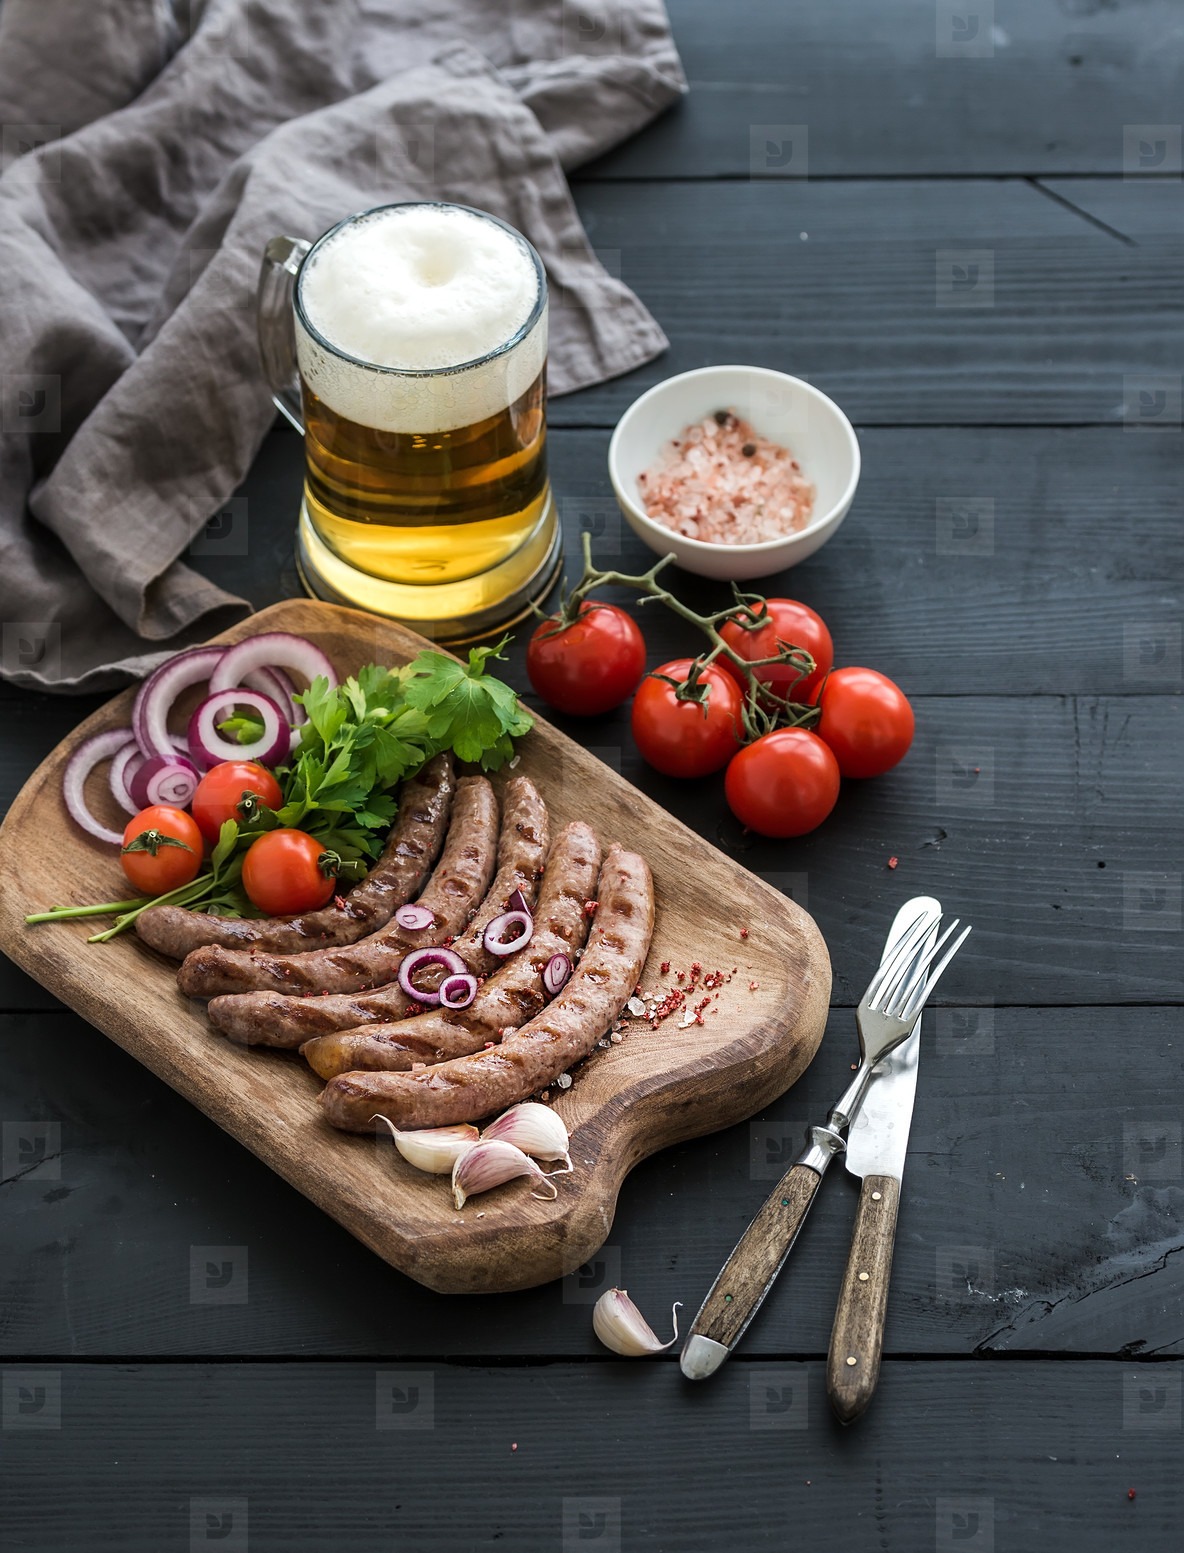 Grilled sausages with vegetables on rustic serving board and mug of light beer over black wooden backdrop